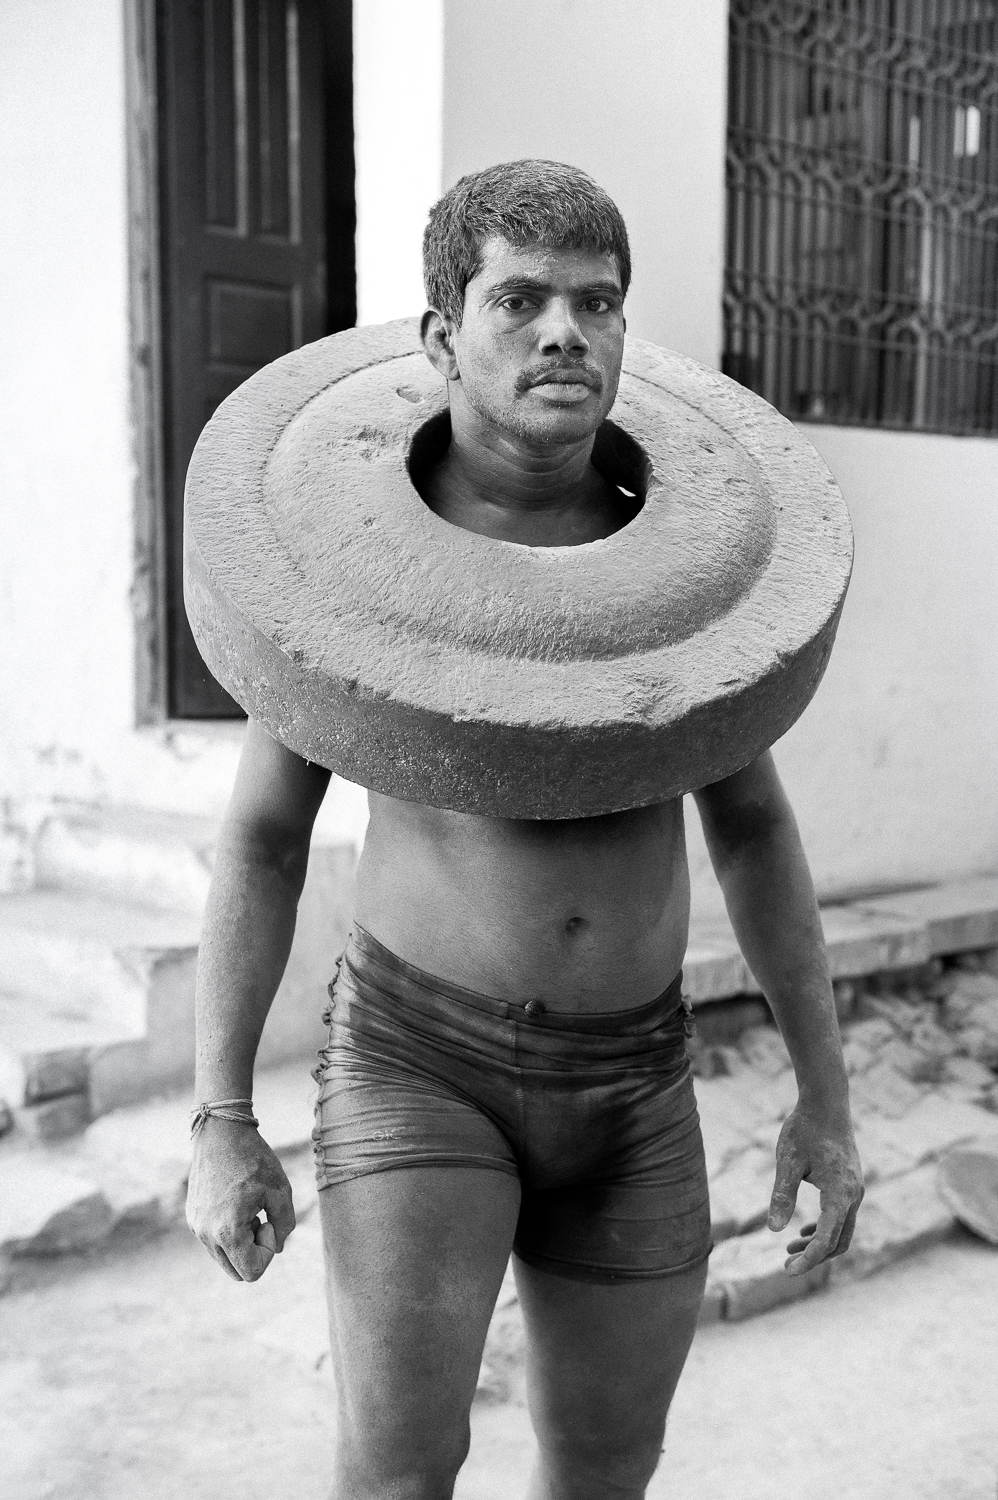 Kushti Wrestler exercising with concrete slab, Varanasi, 2019